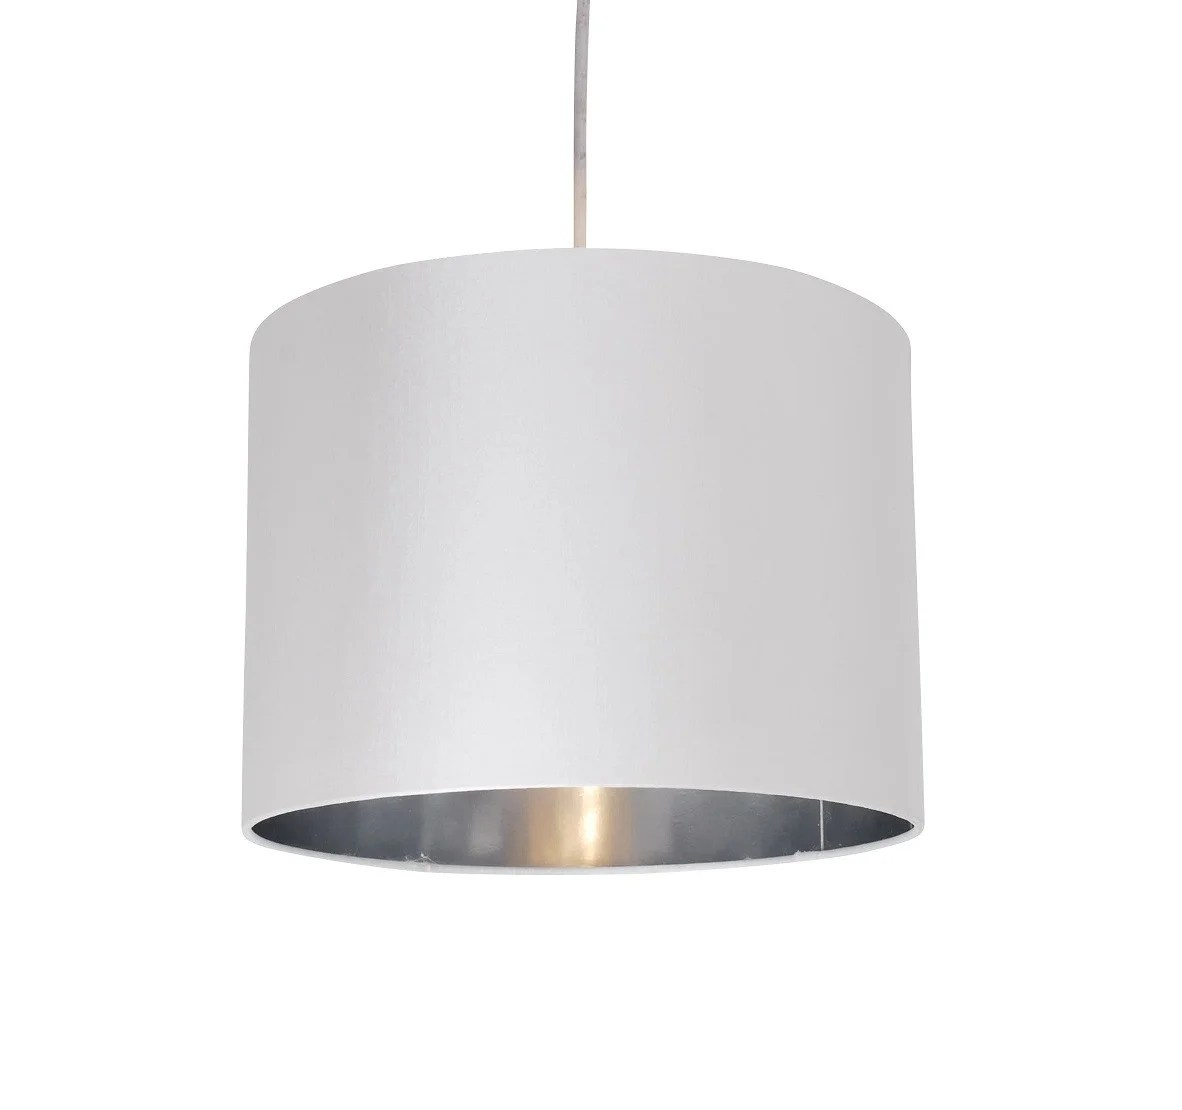 White Fabric 30cm Drum Light Shade With Chrome Inner